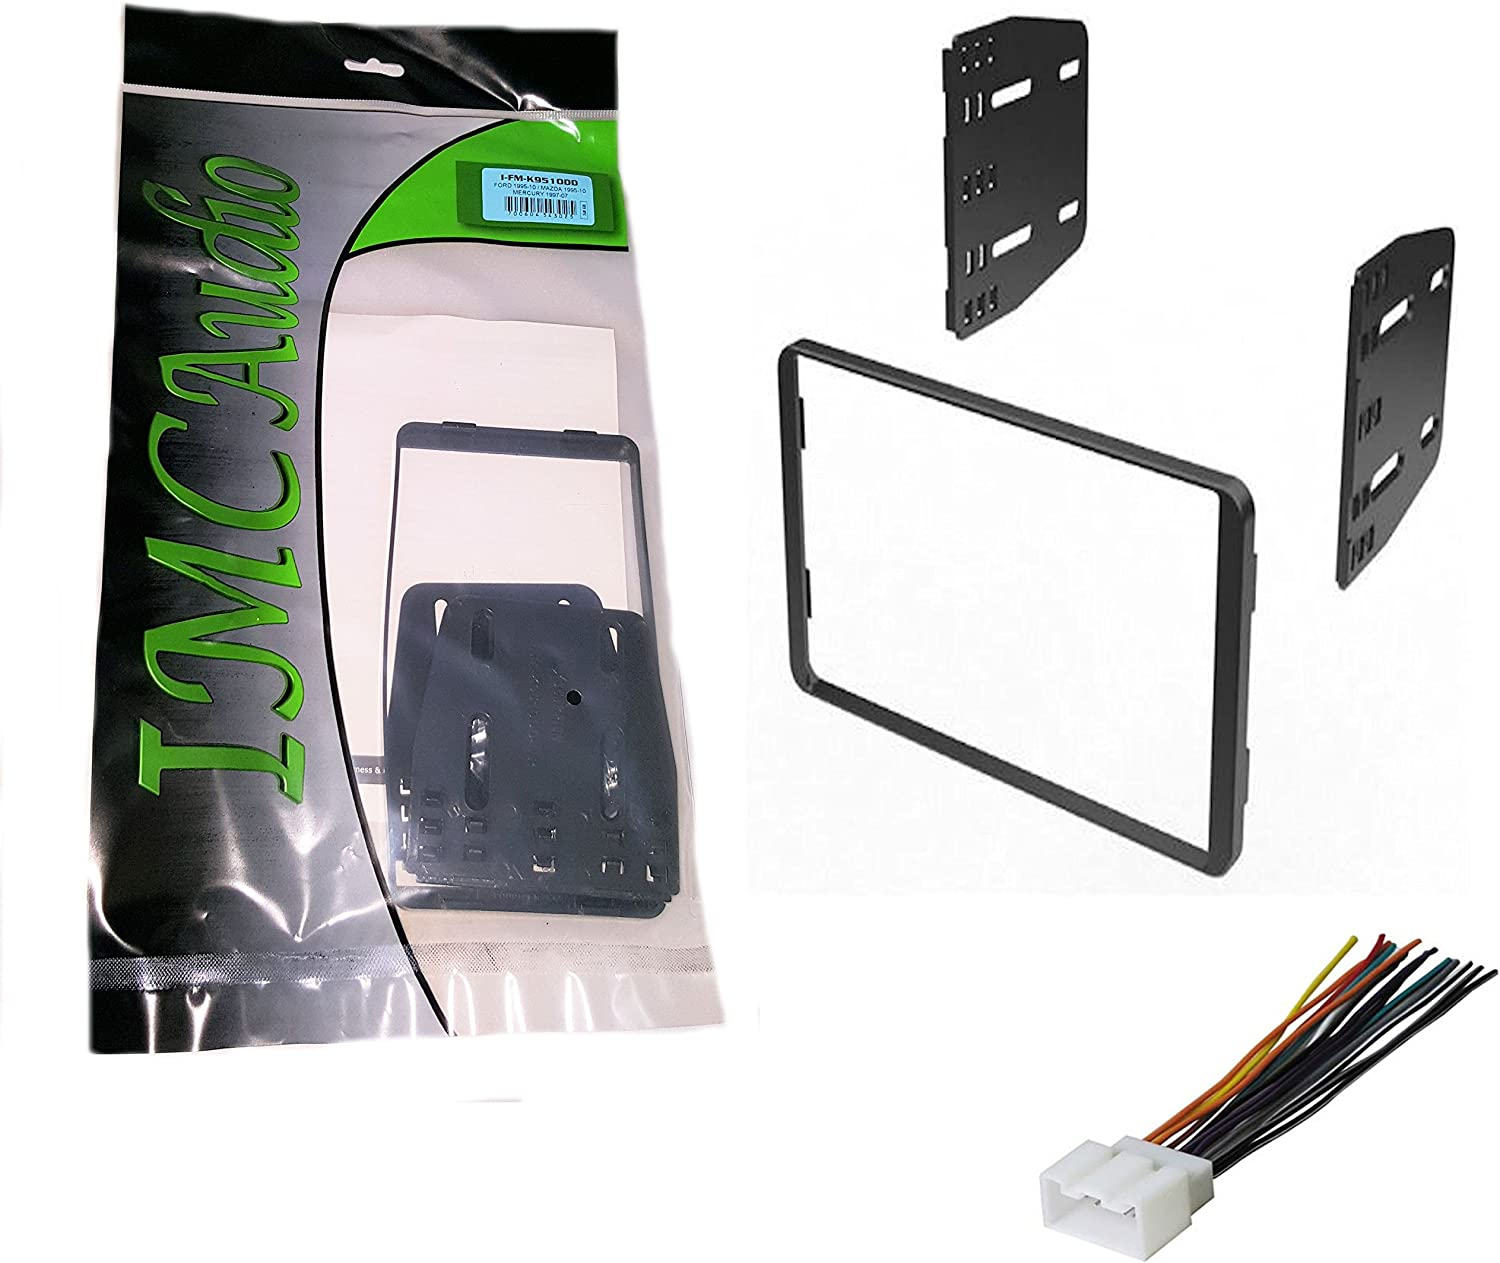 IMC Audio Double Din Dash Kit for Aftermarket Radio Installation for Ford Lincoln Mazda Mercury